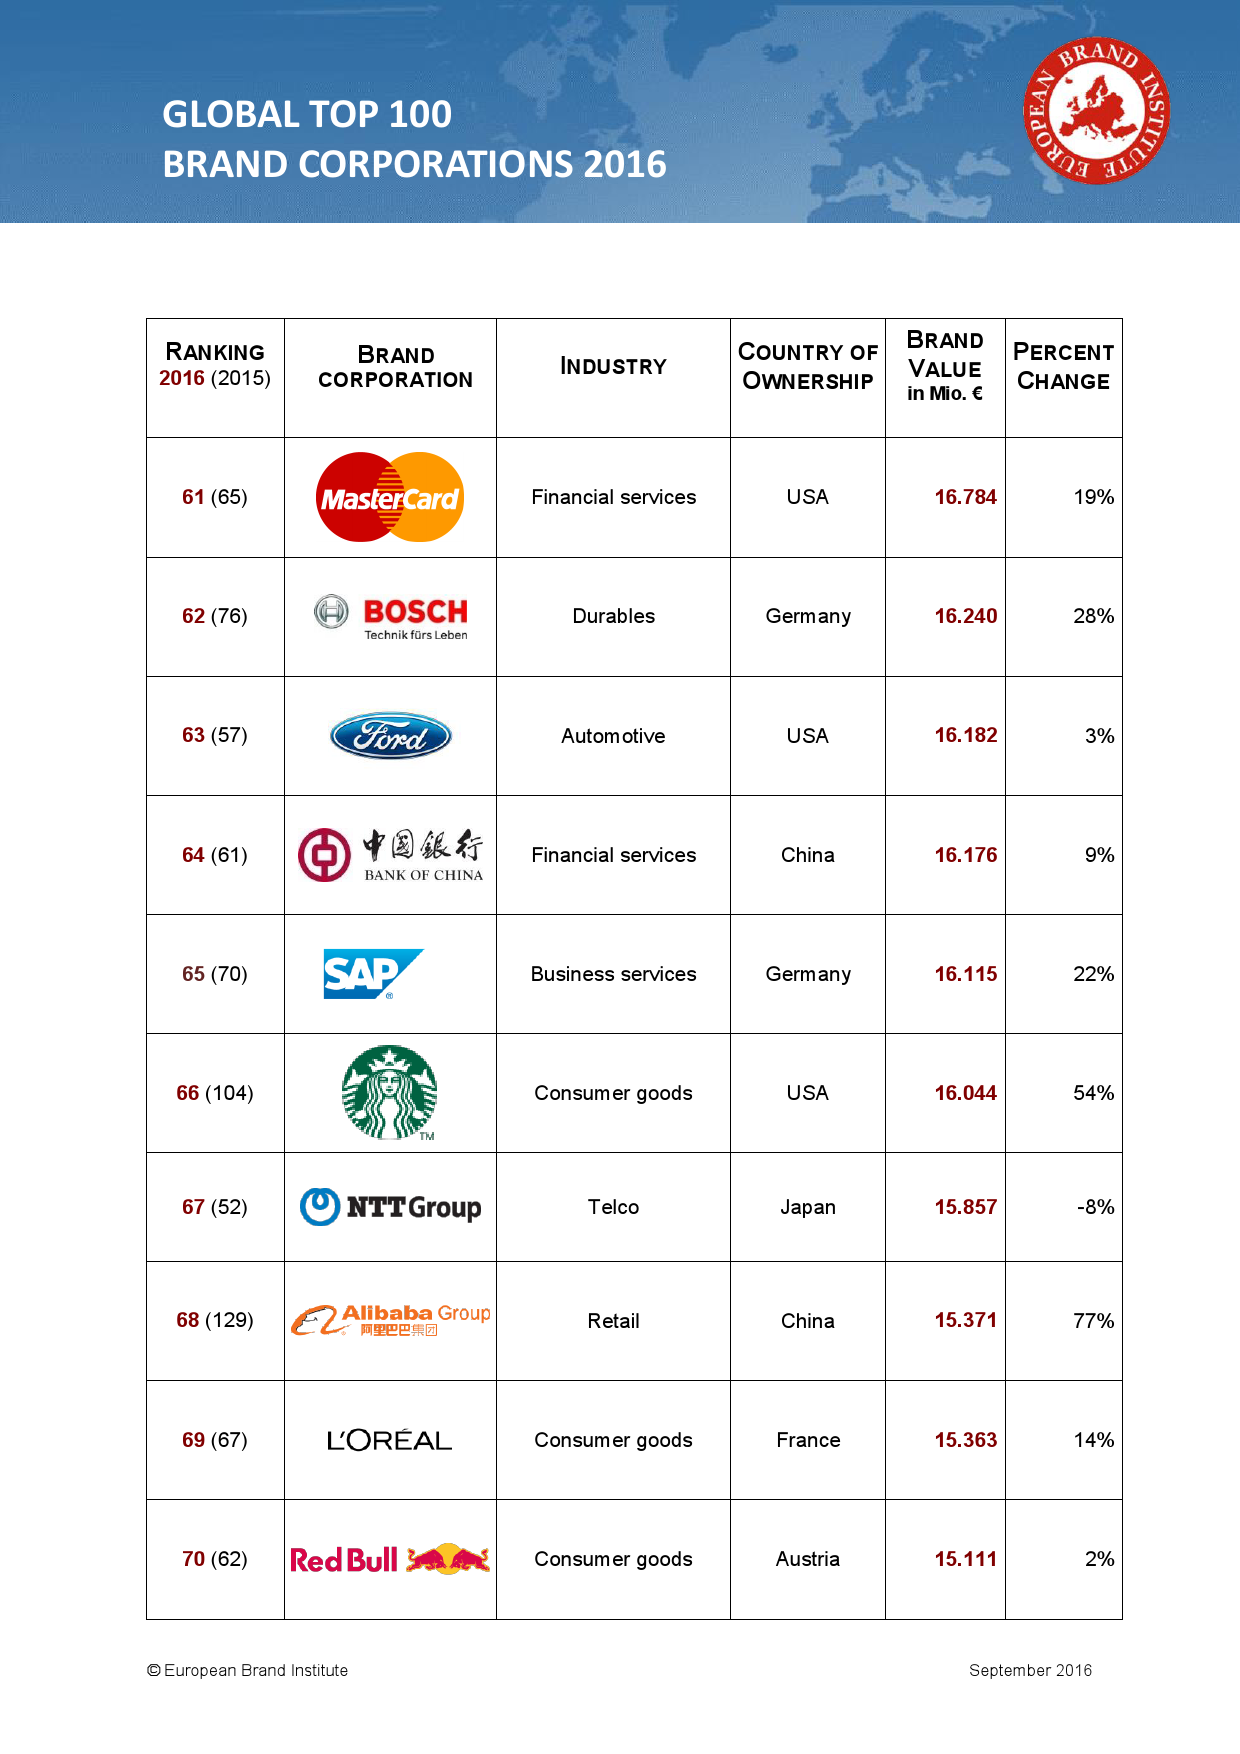 GLOBAL TOP 100 BRAND CORPORATIONS 2016_000007